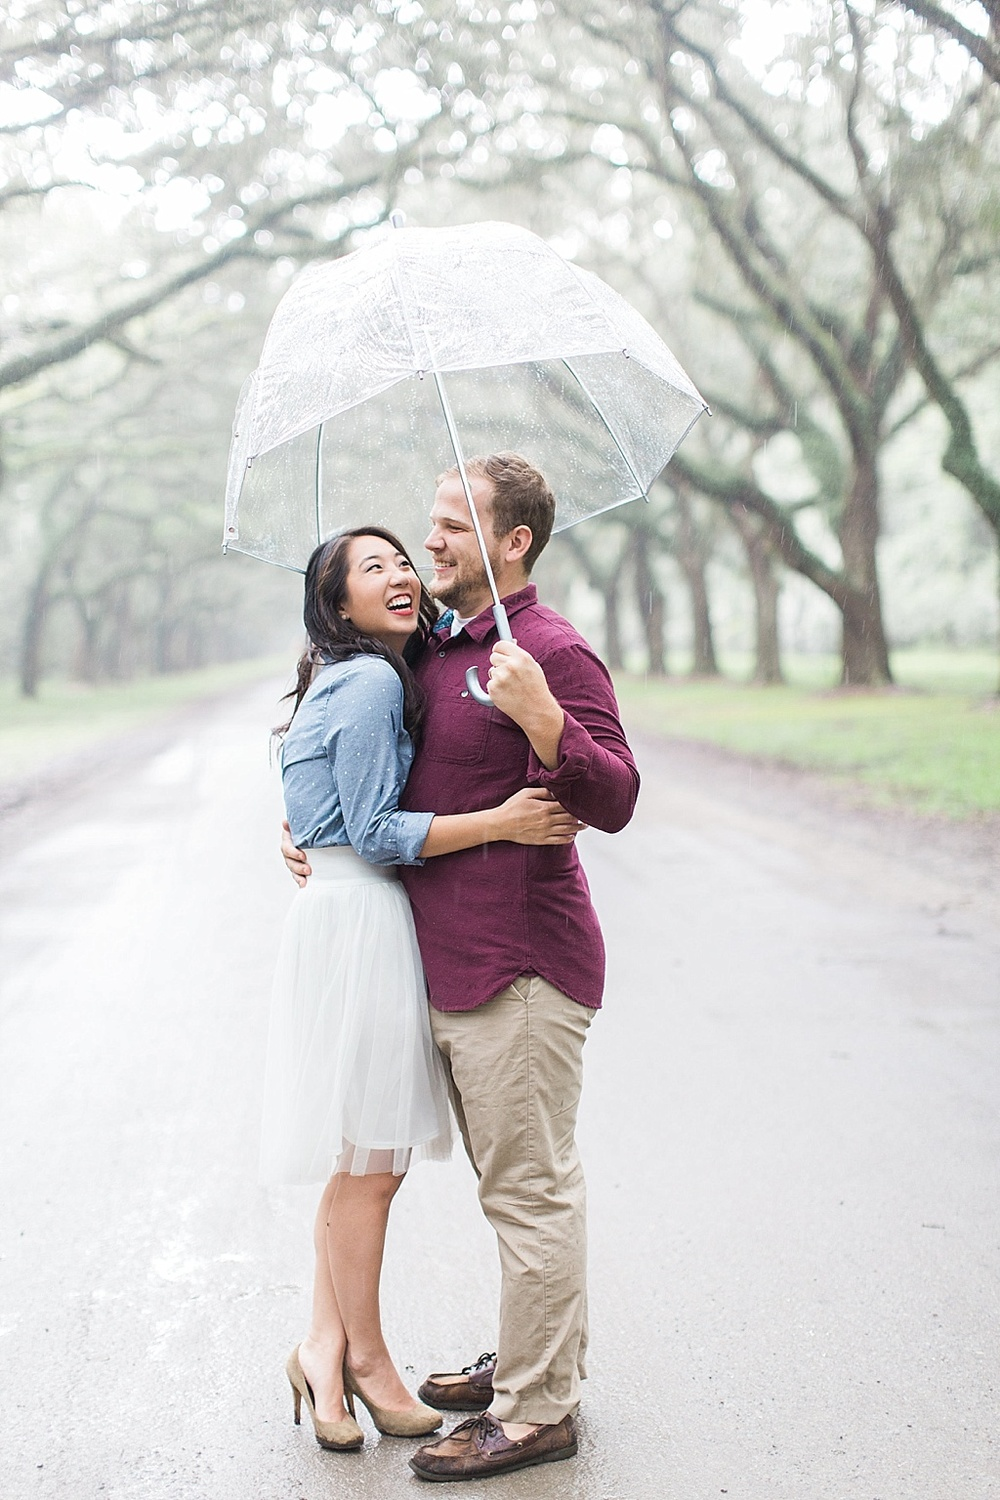 Ronnie_Steve_Savannah_Photographer_Rainy_Day_Photos_Clear_Umbrella010.JPG